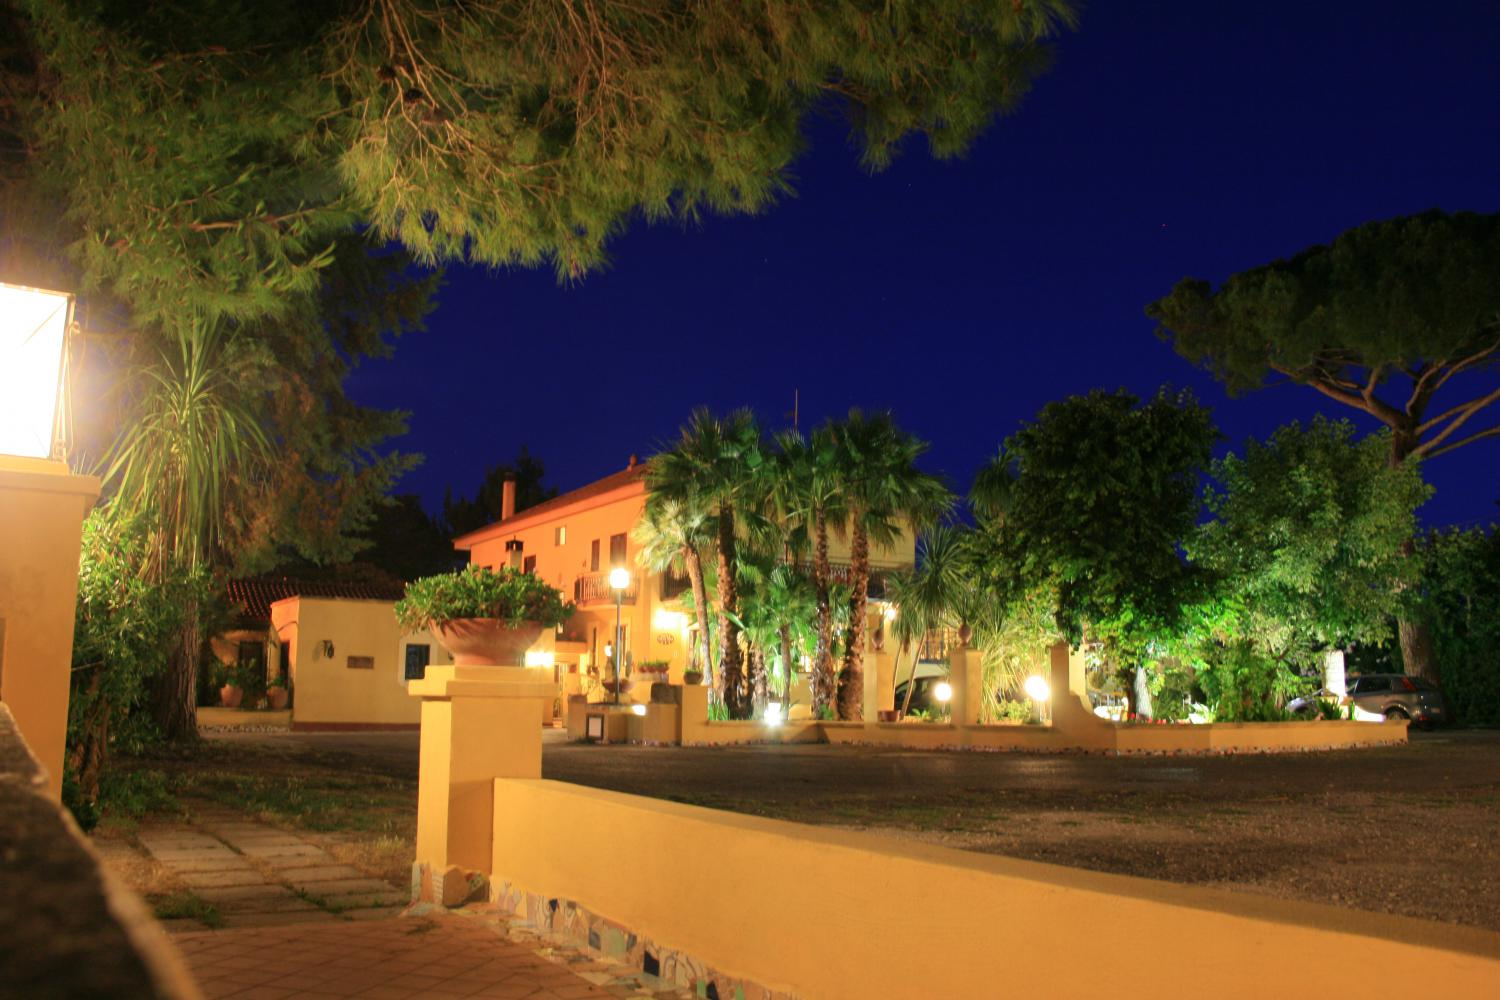 La Villa di Notte - The Villa in the night.JPG